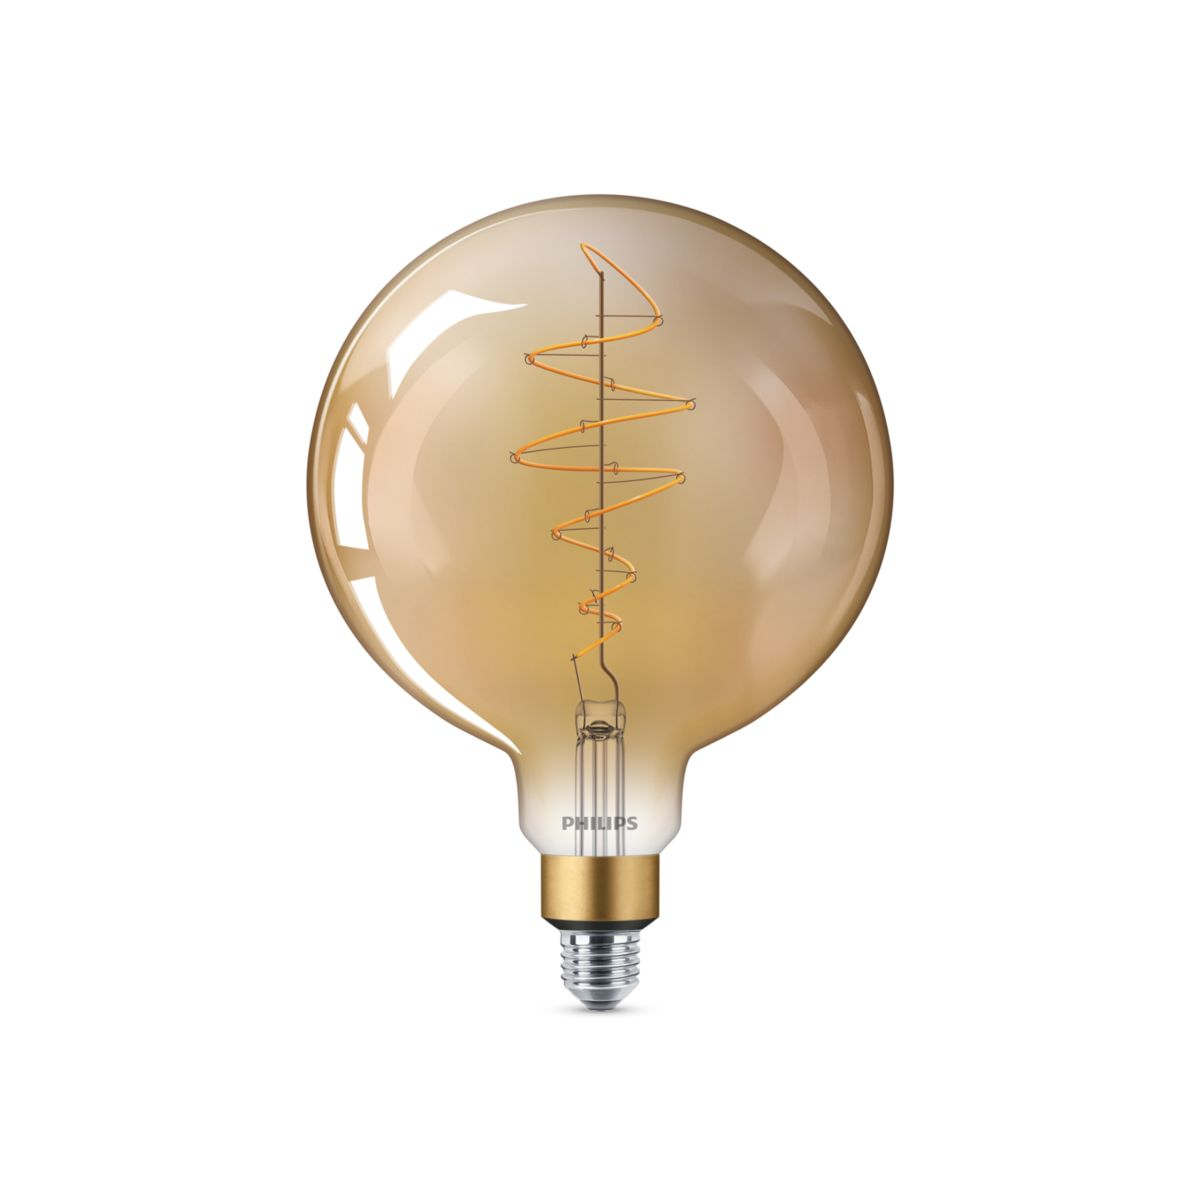 Led Lampen Decoratieve Led Lampen Led Ballonlampen Philips Lighting